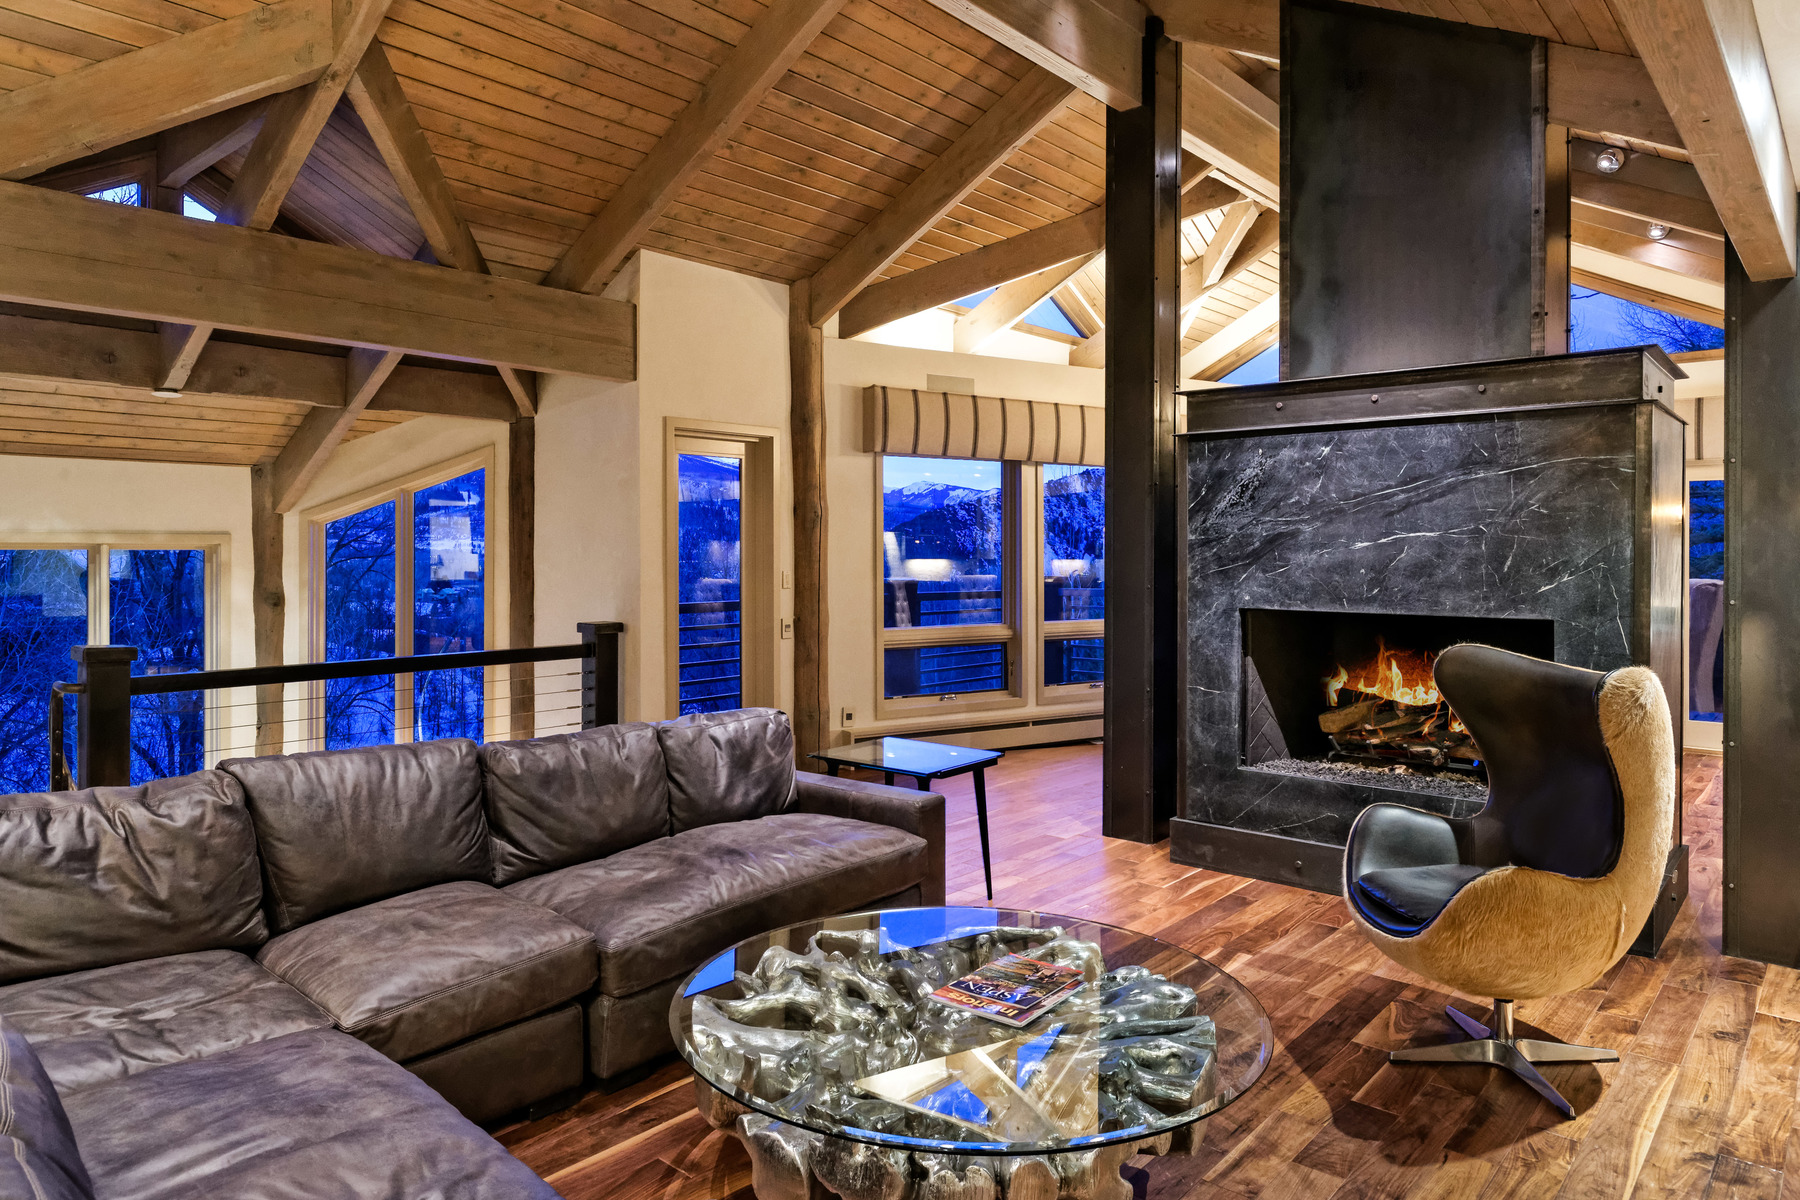 Single Family Home for Sale at Red Mountain Retreat 153 Herron Hollow Road Red Mountain, Aspen, Colorado, 81611 United States